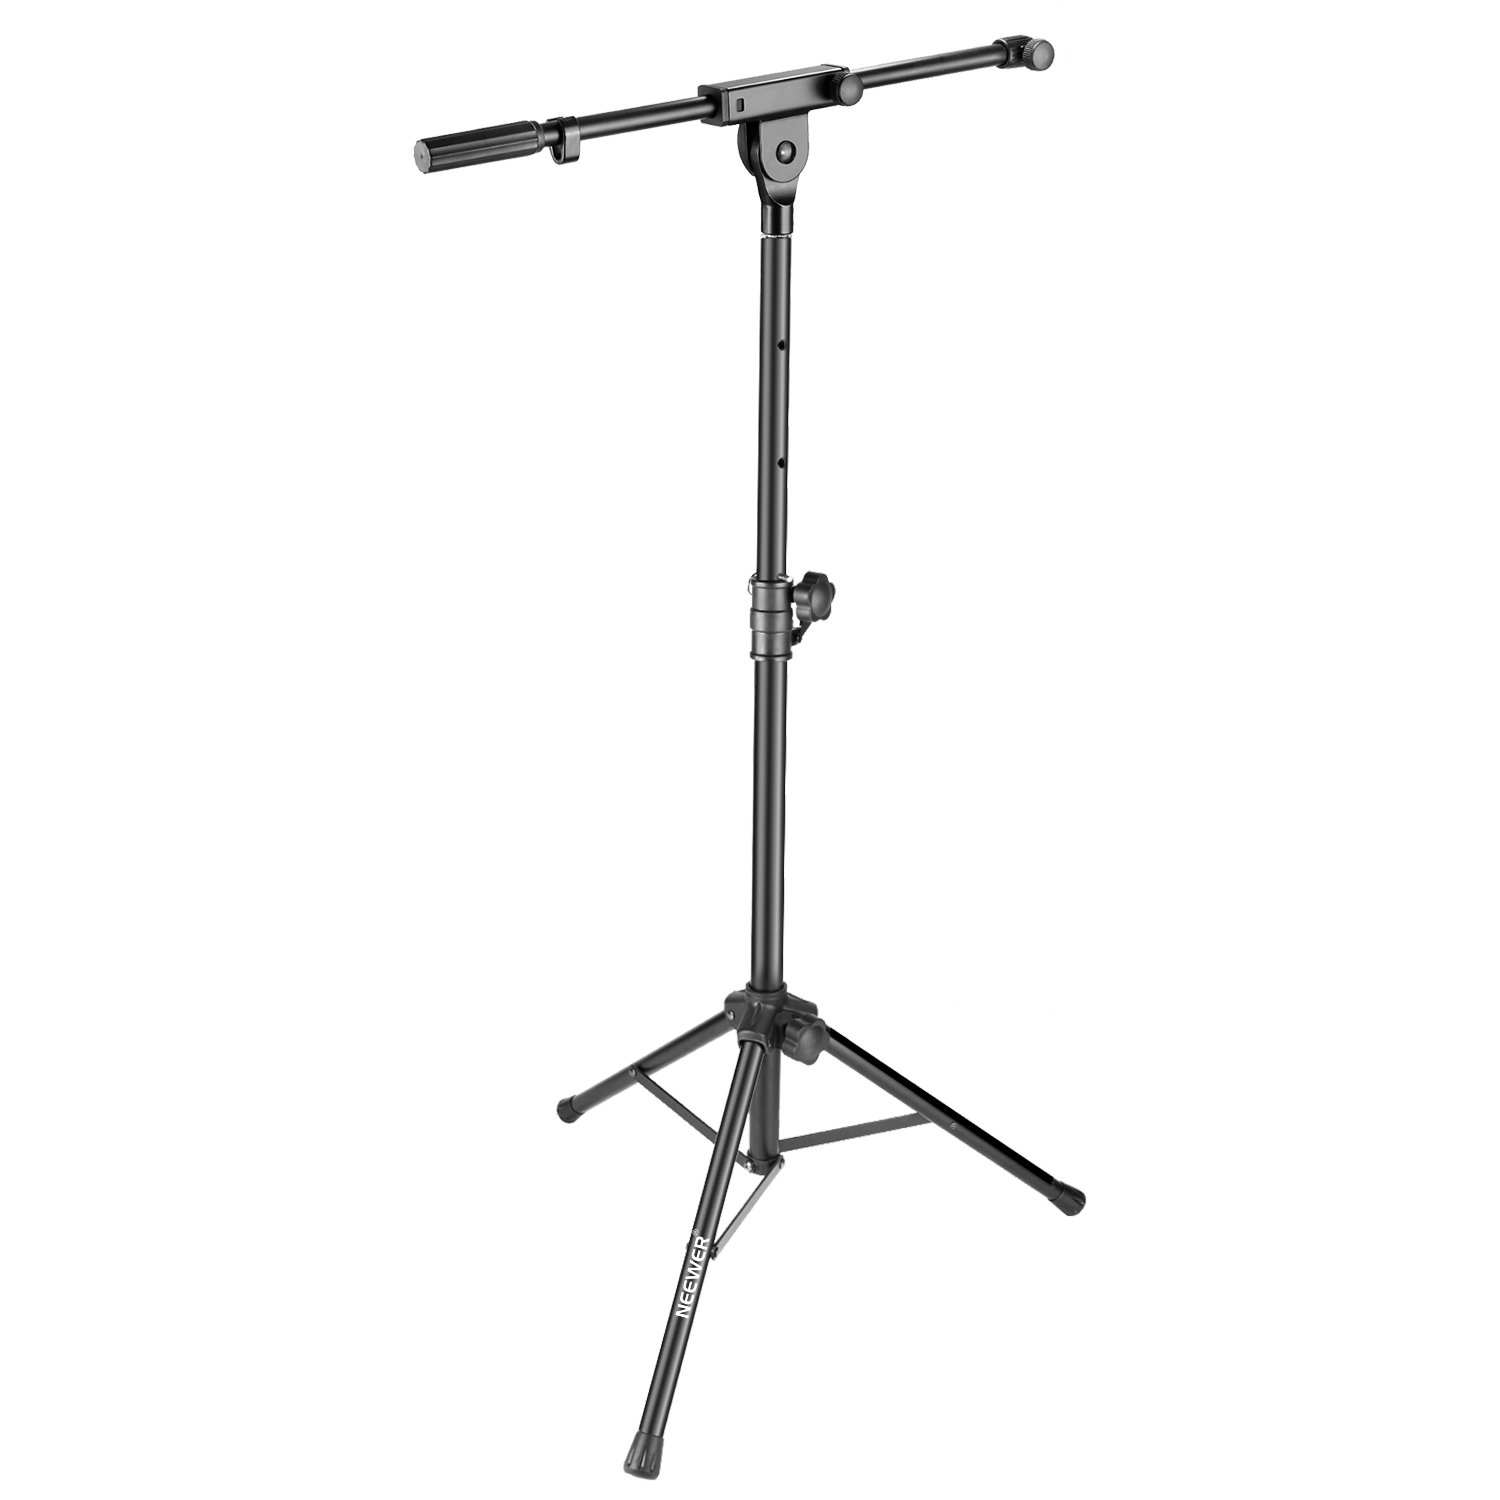 Neewer 2-in-1 Microphone Speaker Stand with Extendable Boom Arm - 51 inches/1.3 meters Adjustable Height and Solid Aluminum Alloy for Home Studio Stage Recording (Only for Neewer NW-PSM05R Speaker) 40090782